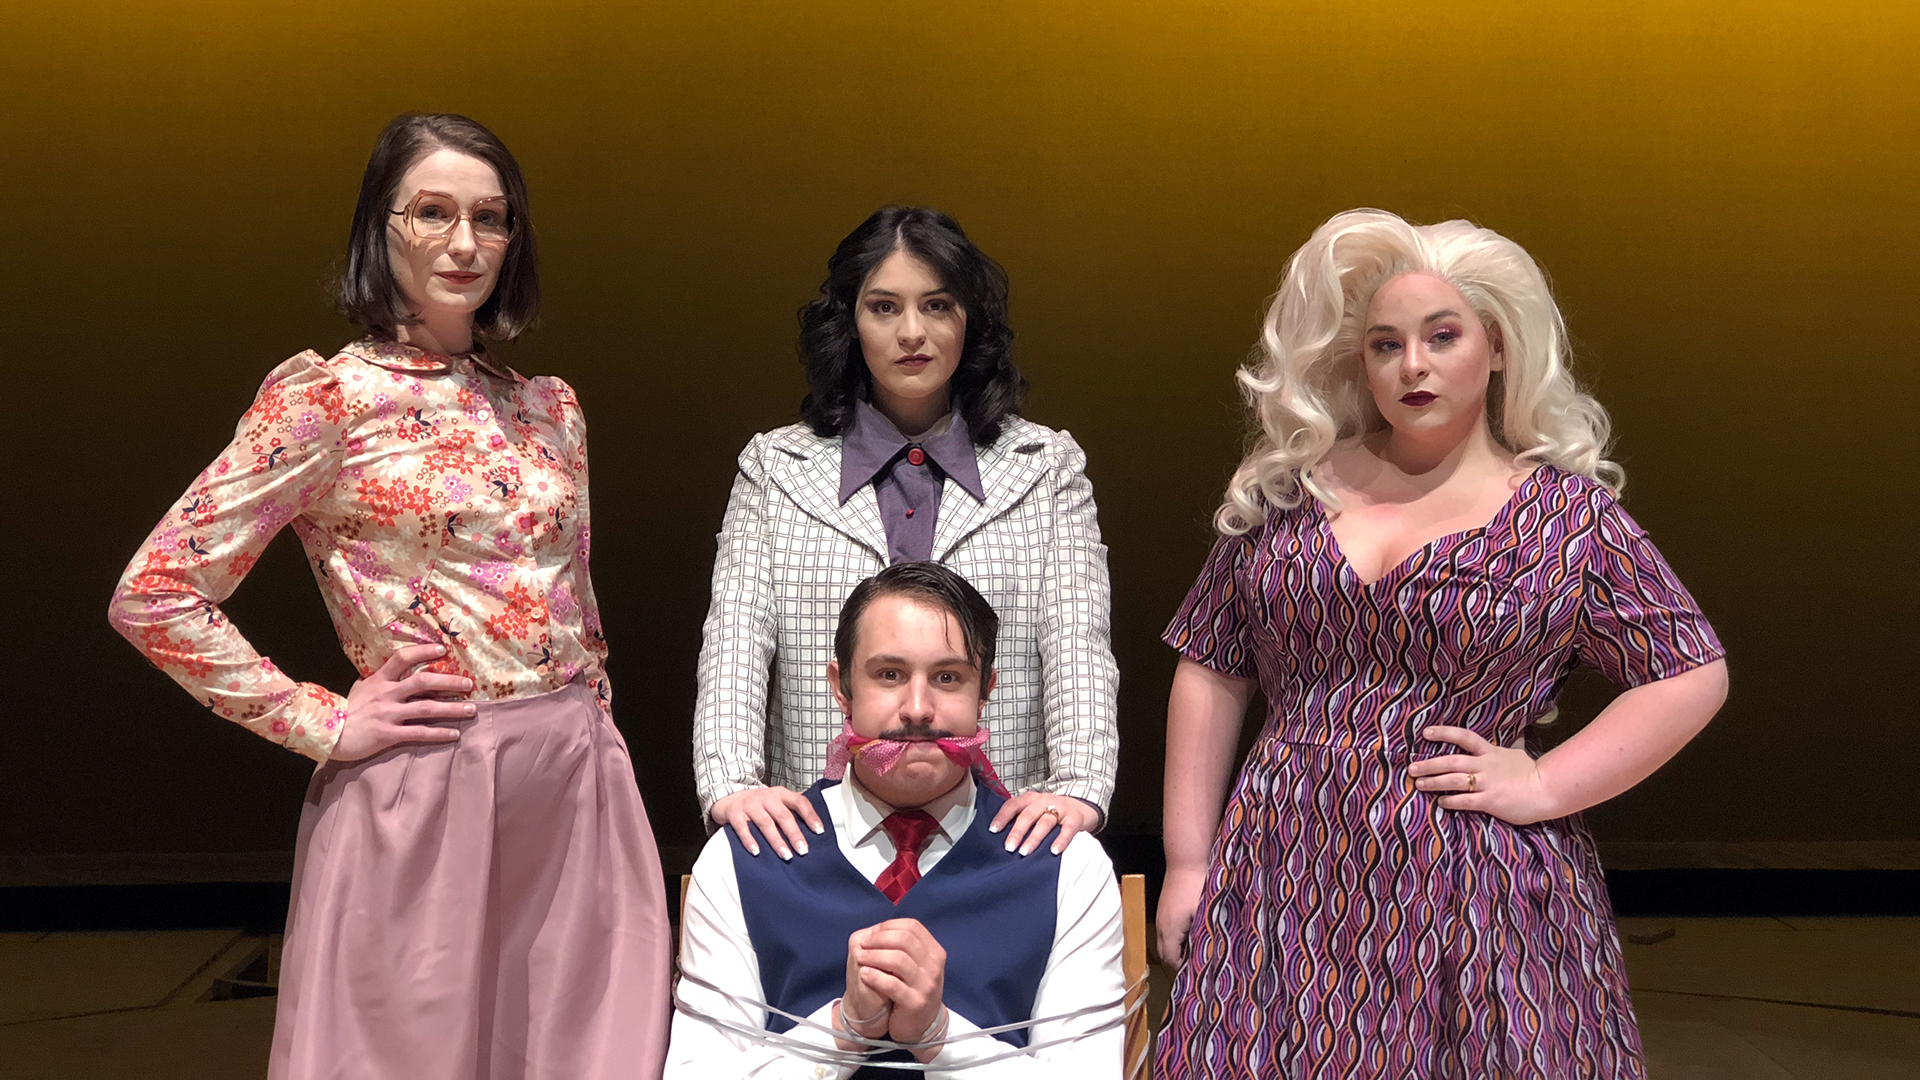 Play Here's Activity Roundup for April 19 to 26, including Earth Day, '9 to 5,' 'American in Paris,' Venom, more